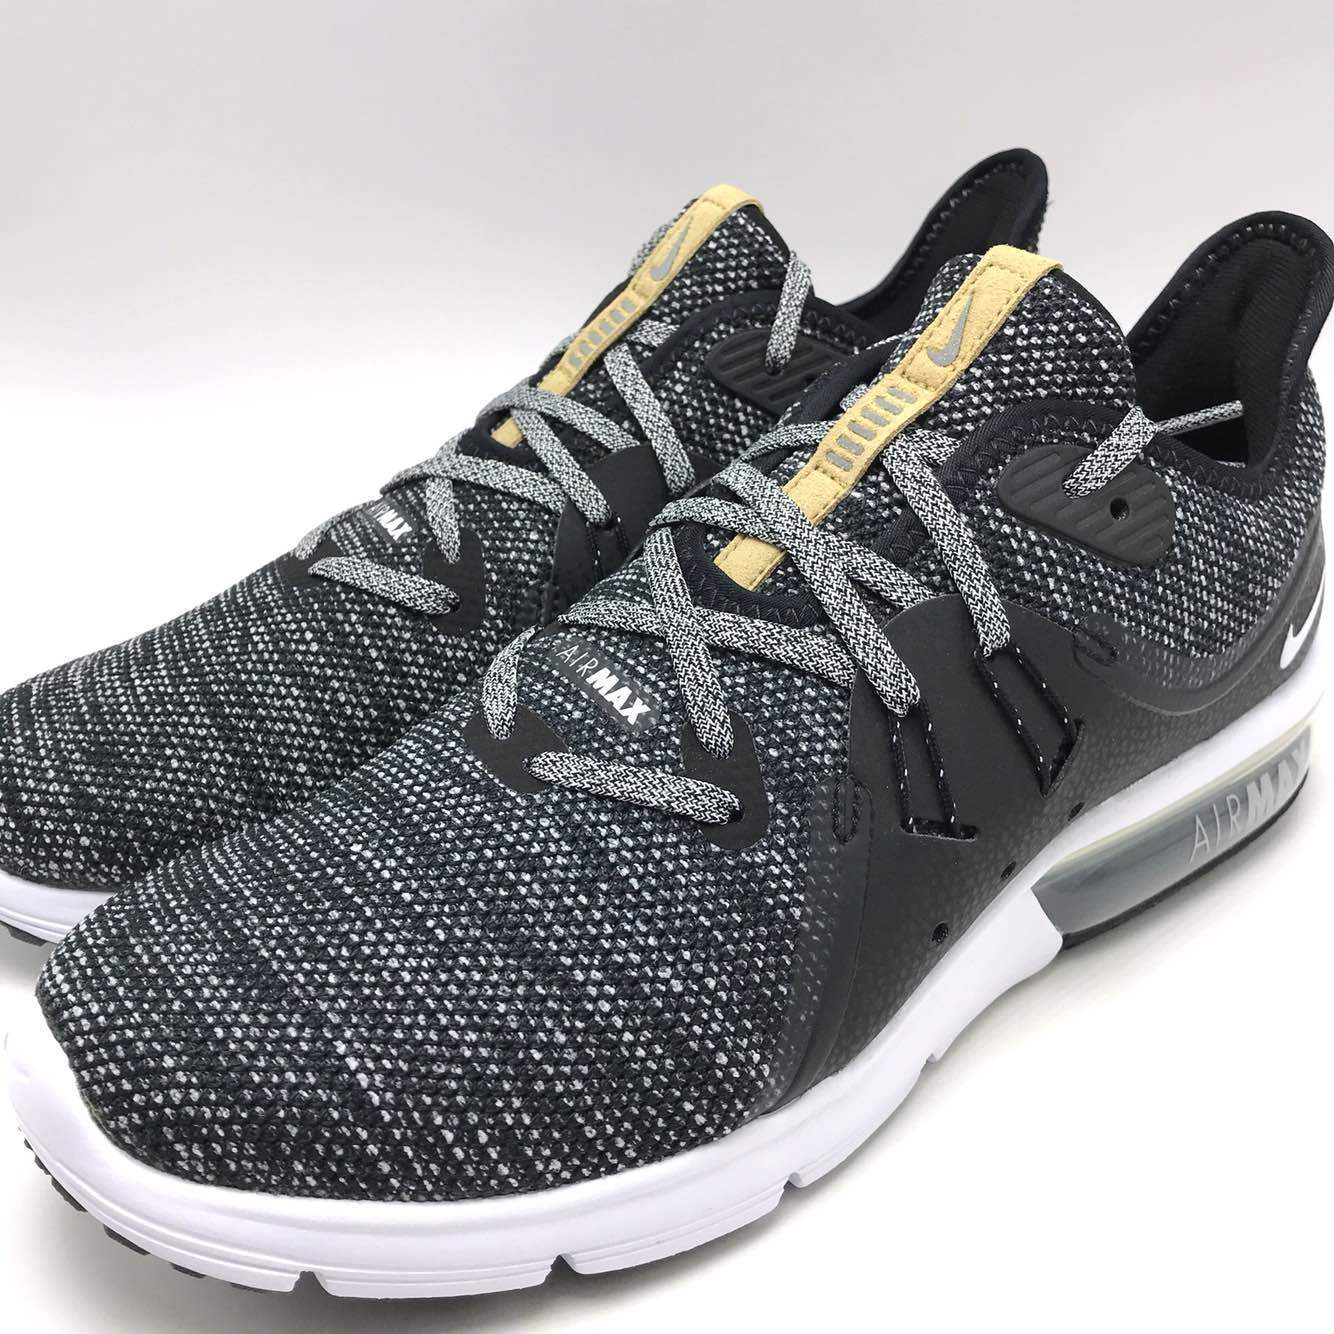 Nike Air Max Sequent 3 Men's Running shoes Black White-Dark Grey 921694-011